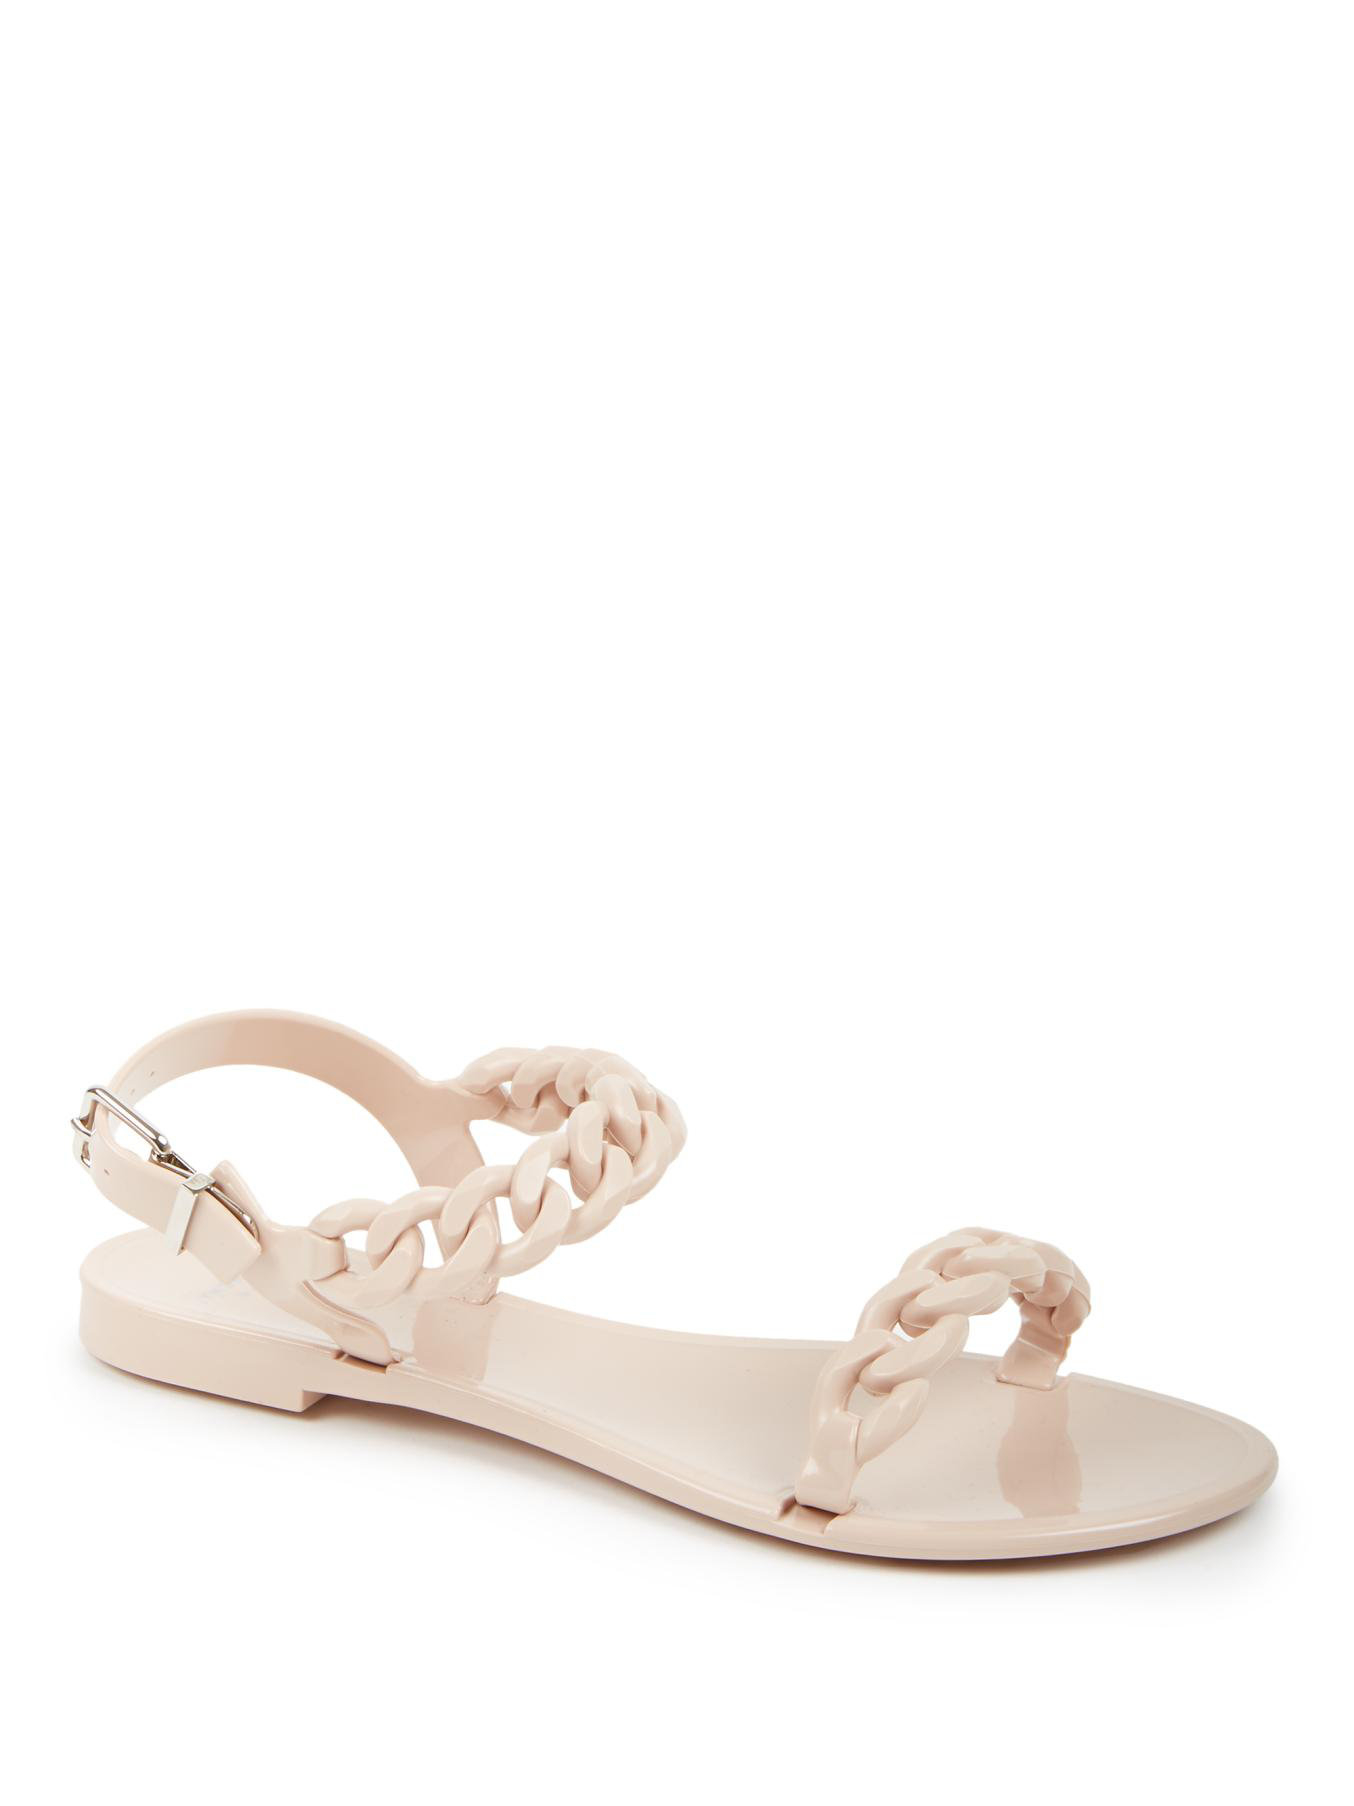 f93af981b094 Lyst - Givenchy Nea Jelly Flat Sandals in Natural